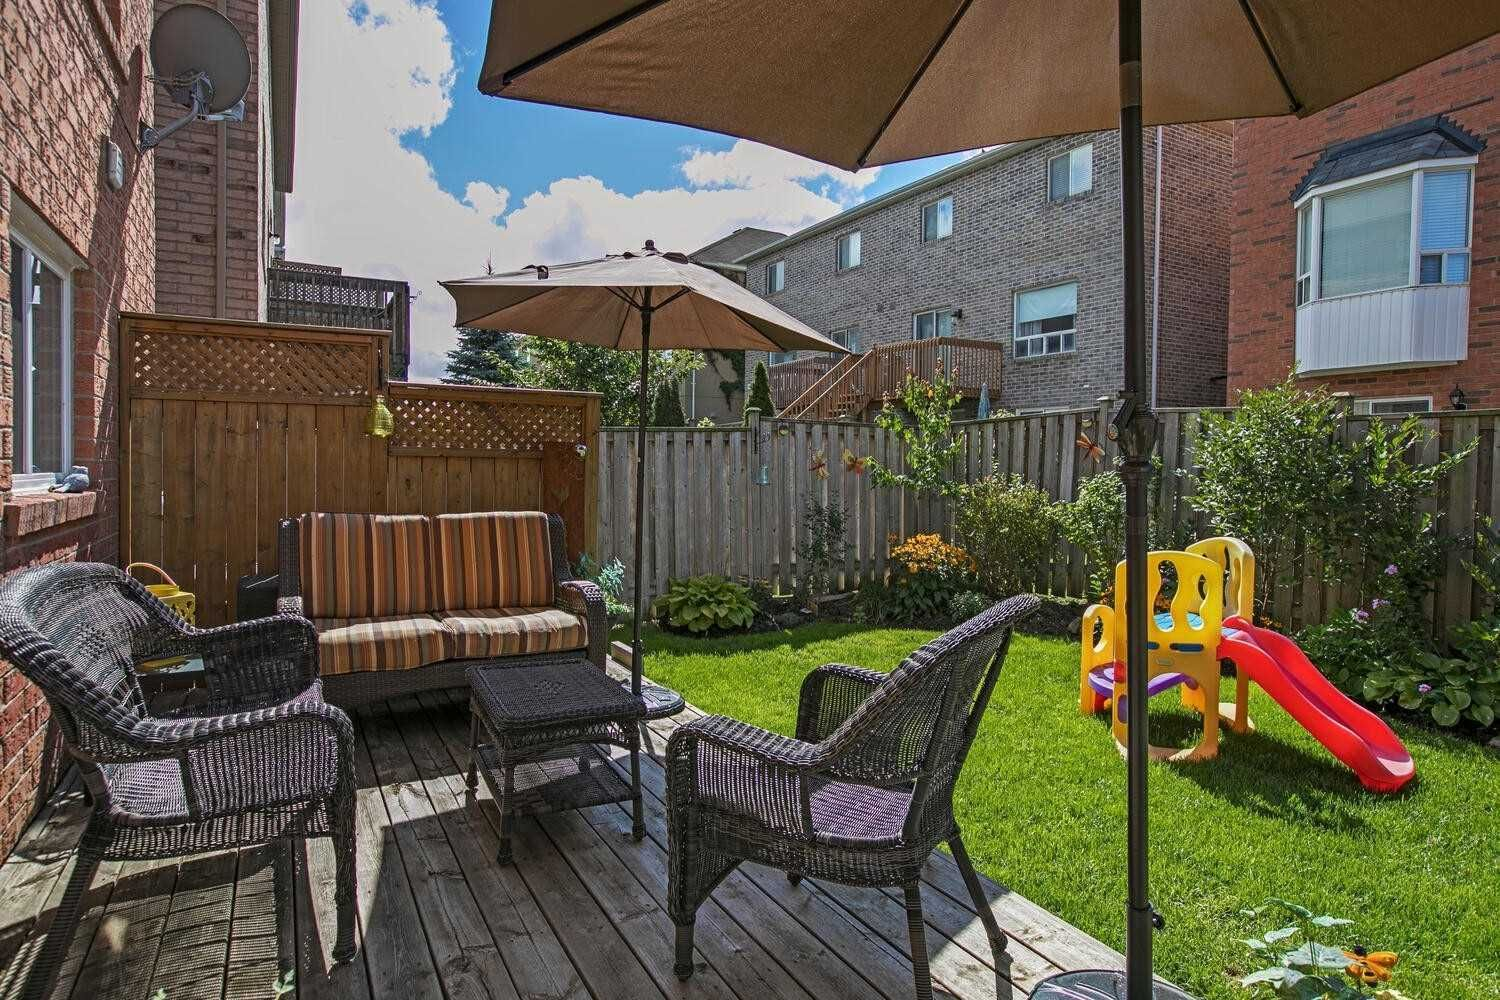 Photo 20: Photos: 190 Dean Burton Lane in Newmarket: Woodland Hill House (2-Storey) for sale : MLS®# N4918510